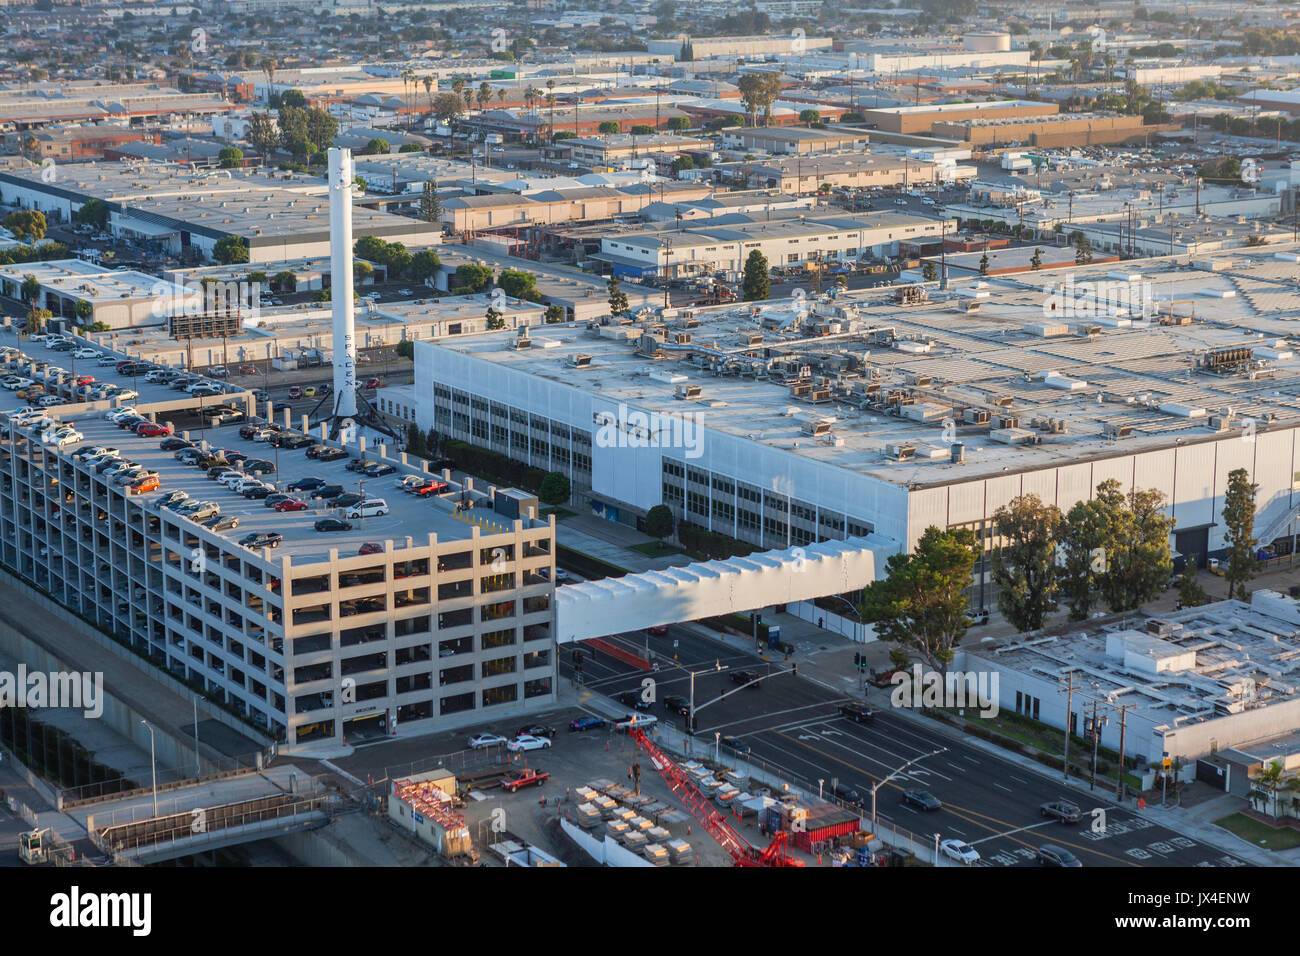 Hawthorne, California, USA - August 7, 2017:  Aerial view of the SPACEX headquarters and rocket manufacturing building. - Stock Image